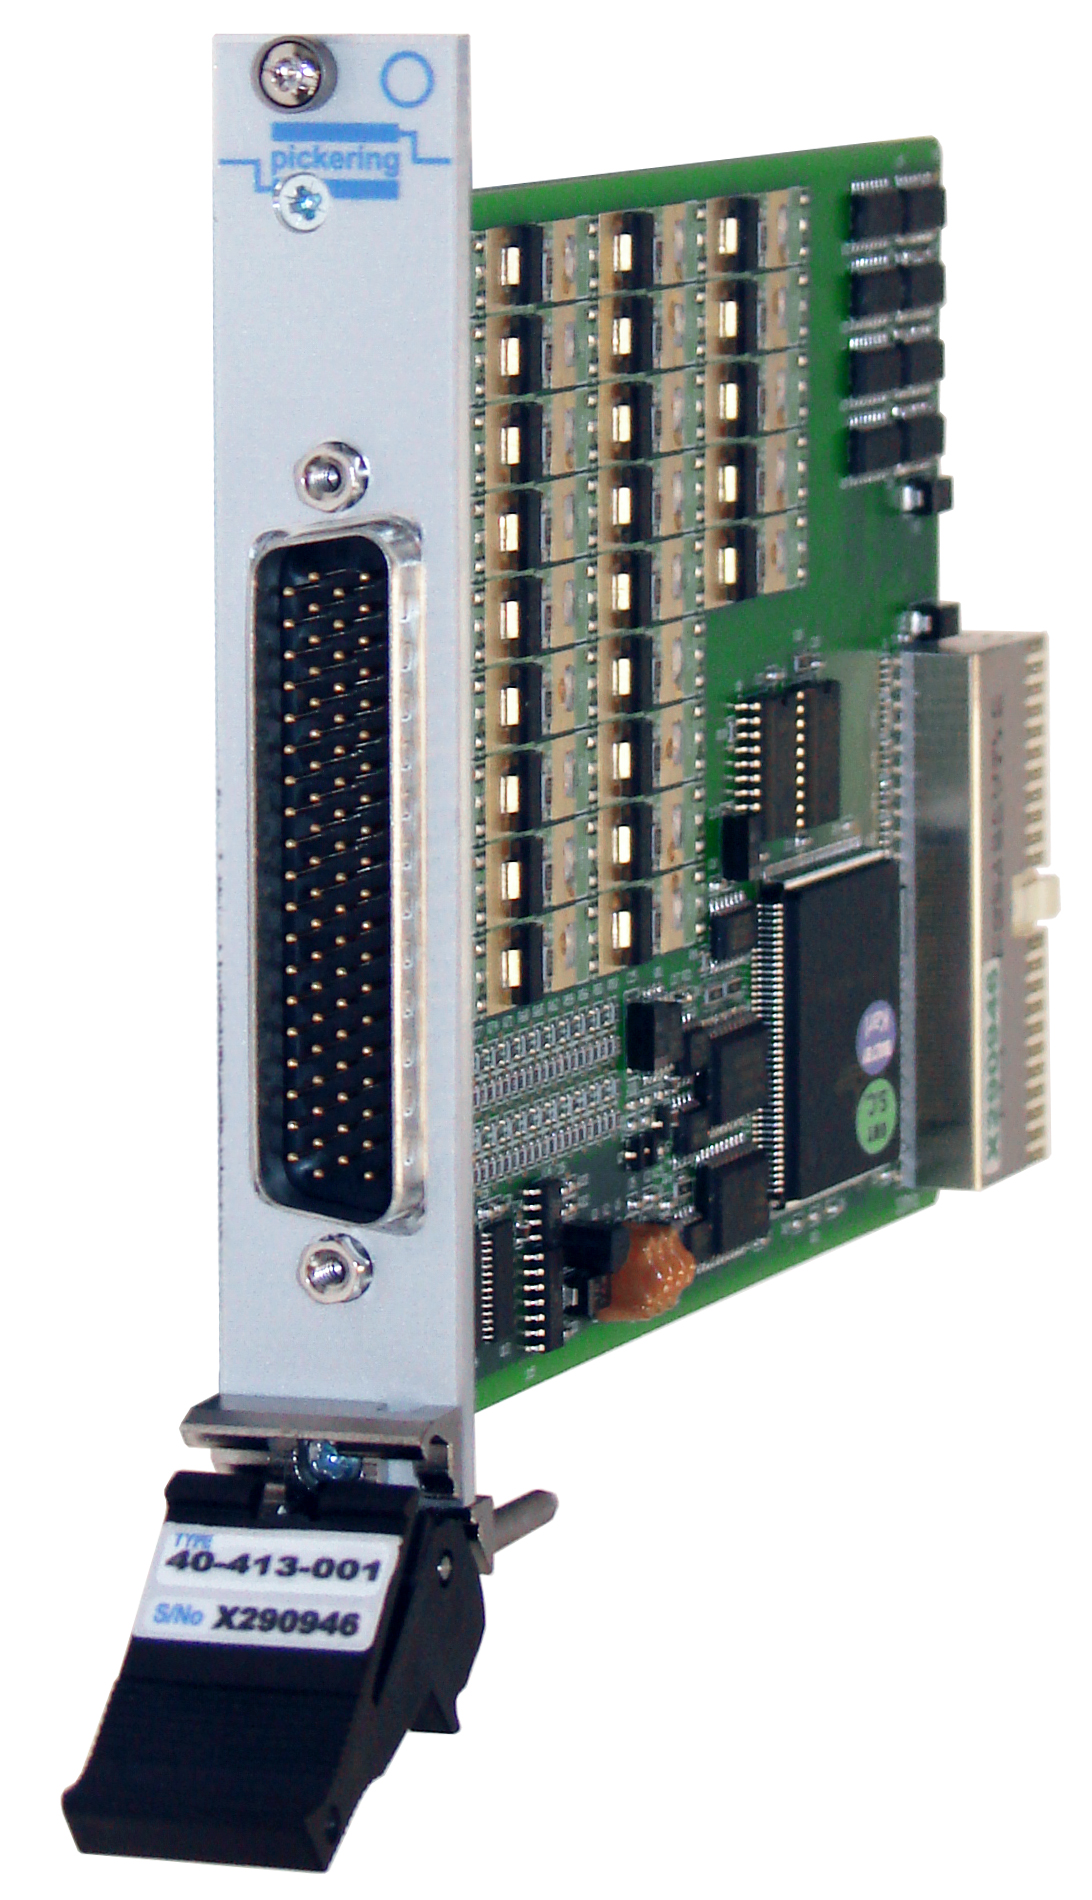 Front panel of PXI card 40-413-001